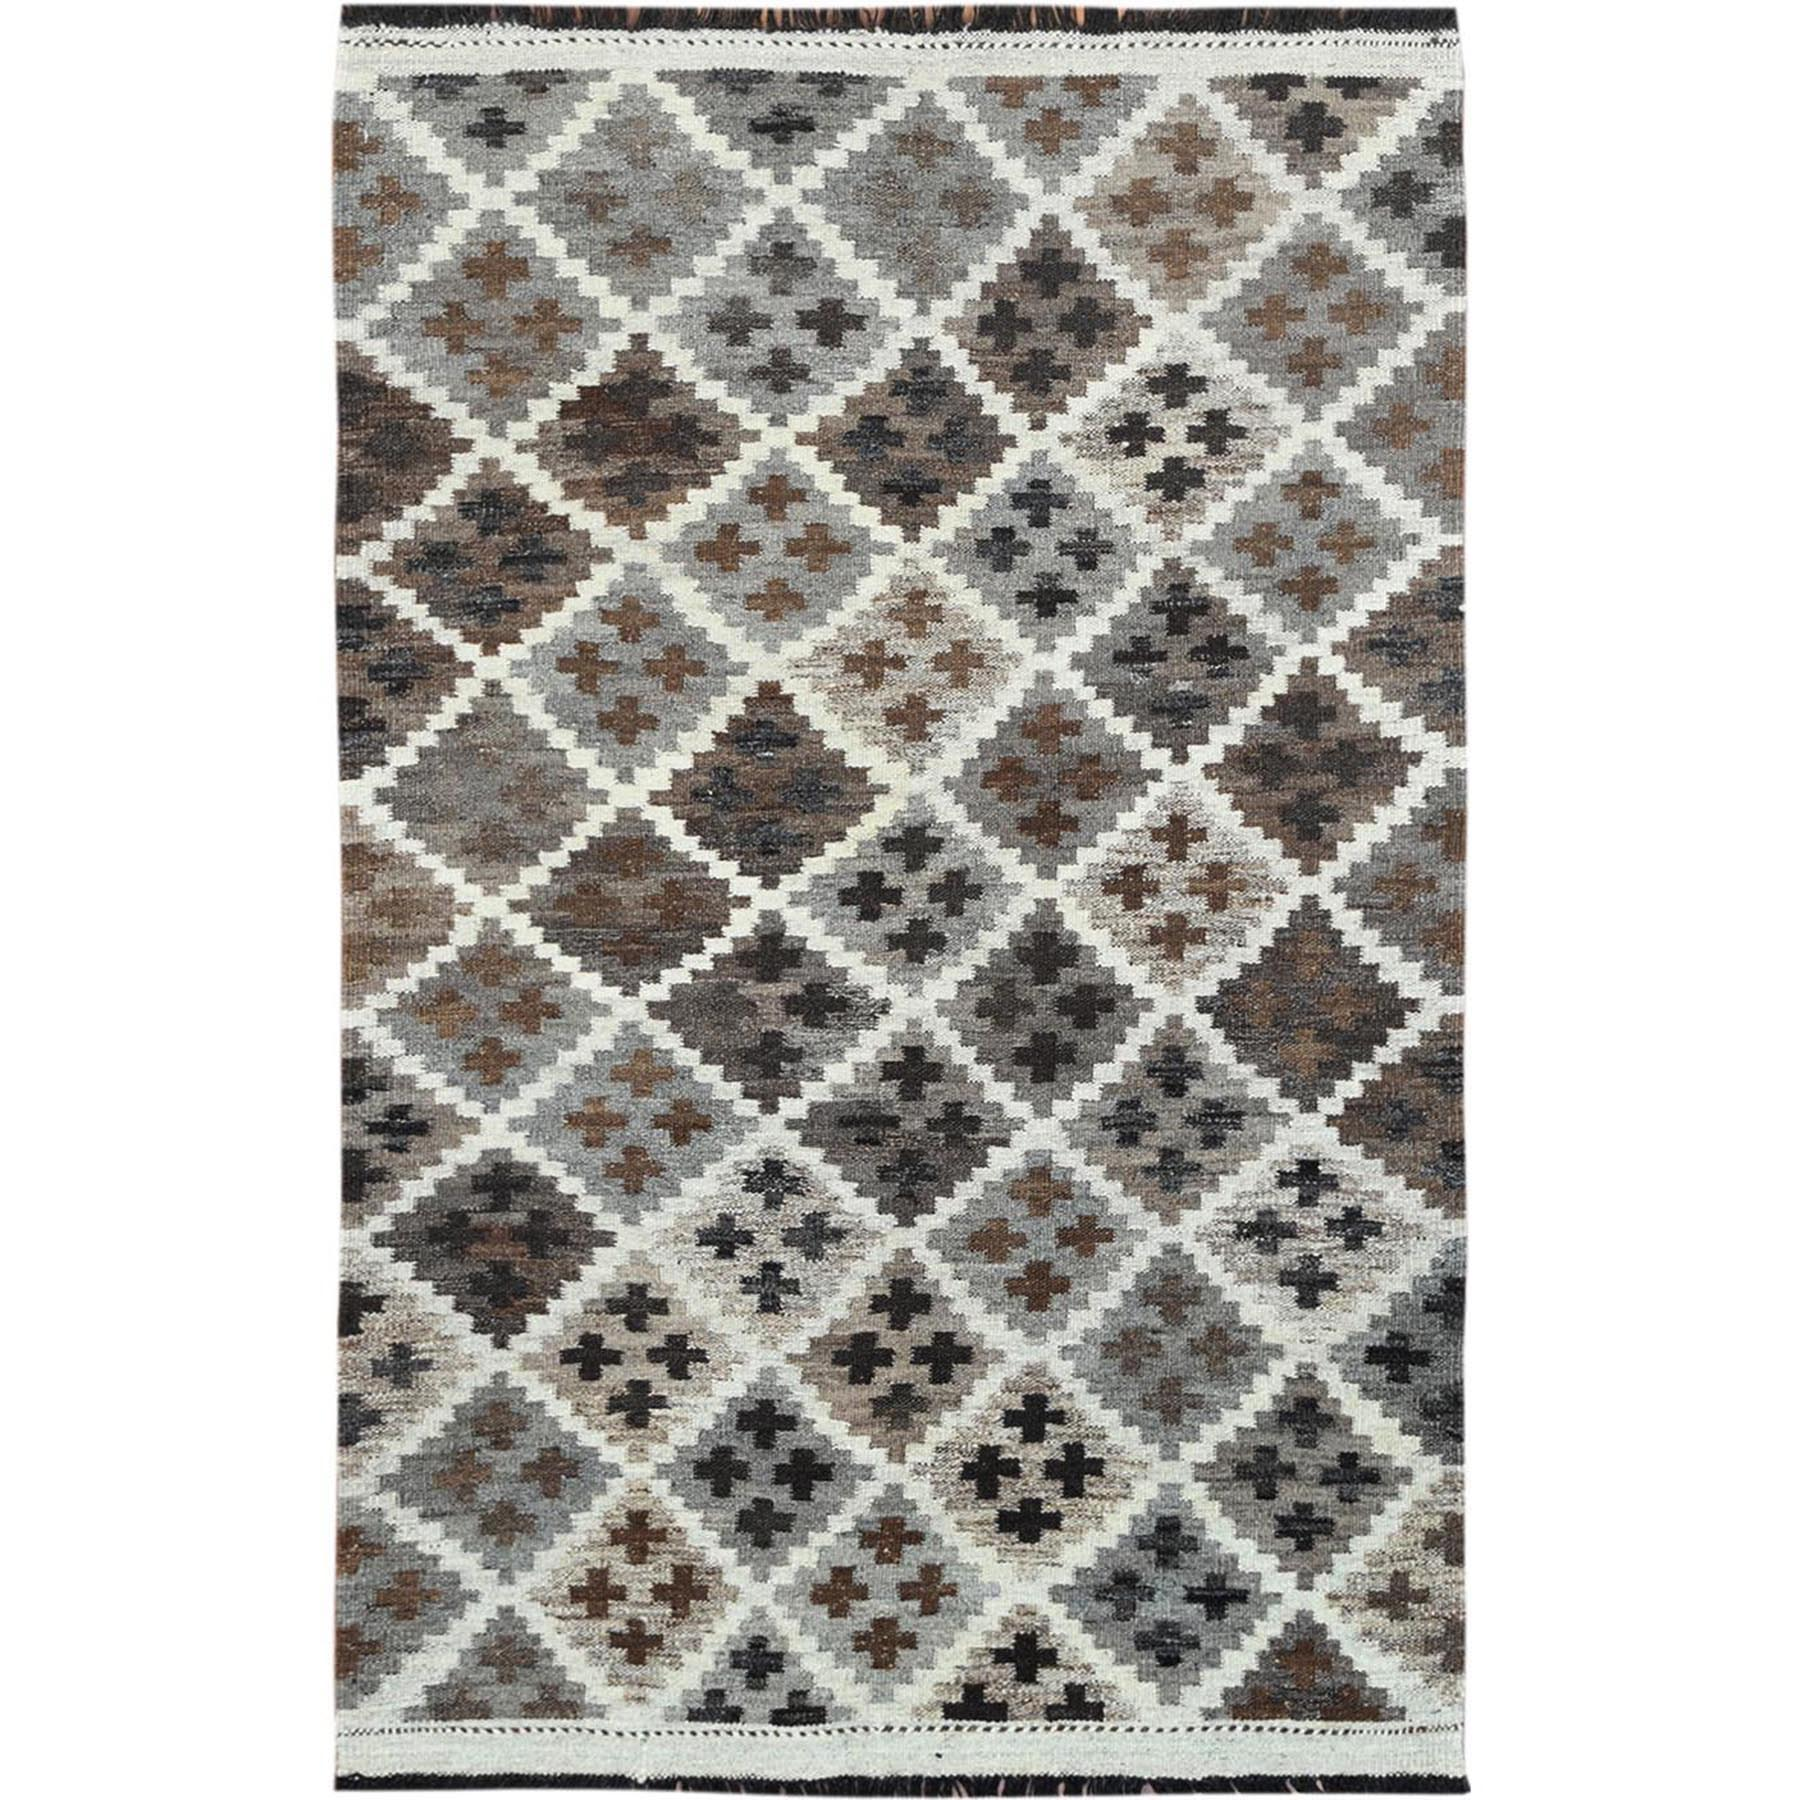 "3'2""x5' Taupe Geometric Design Afghan Kilim Reversible Undyed Organic Wool Hand Woven Oriental Rug"